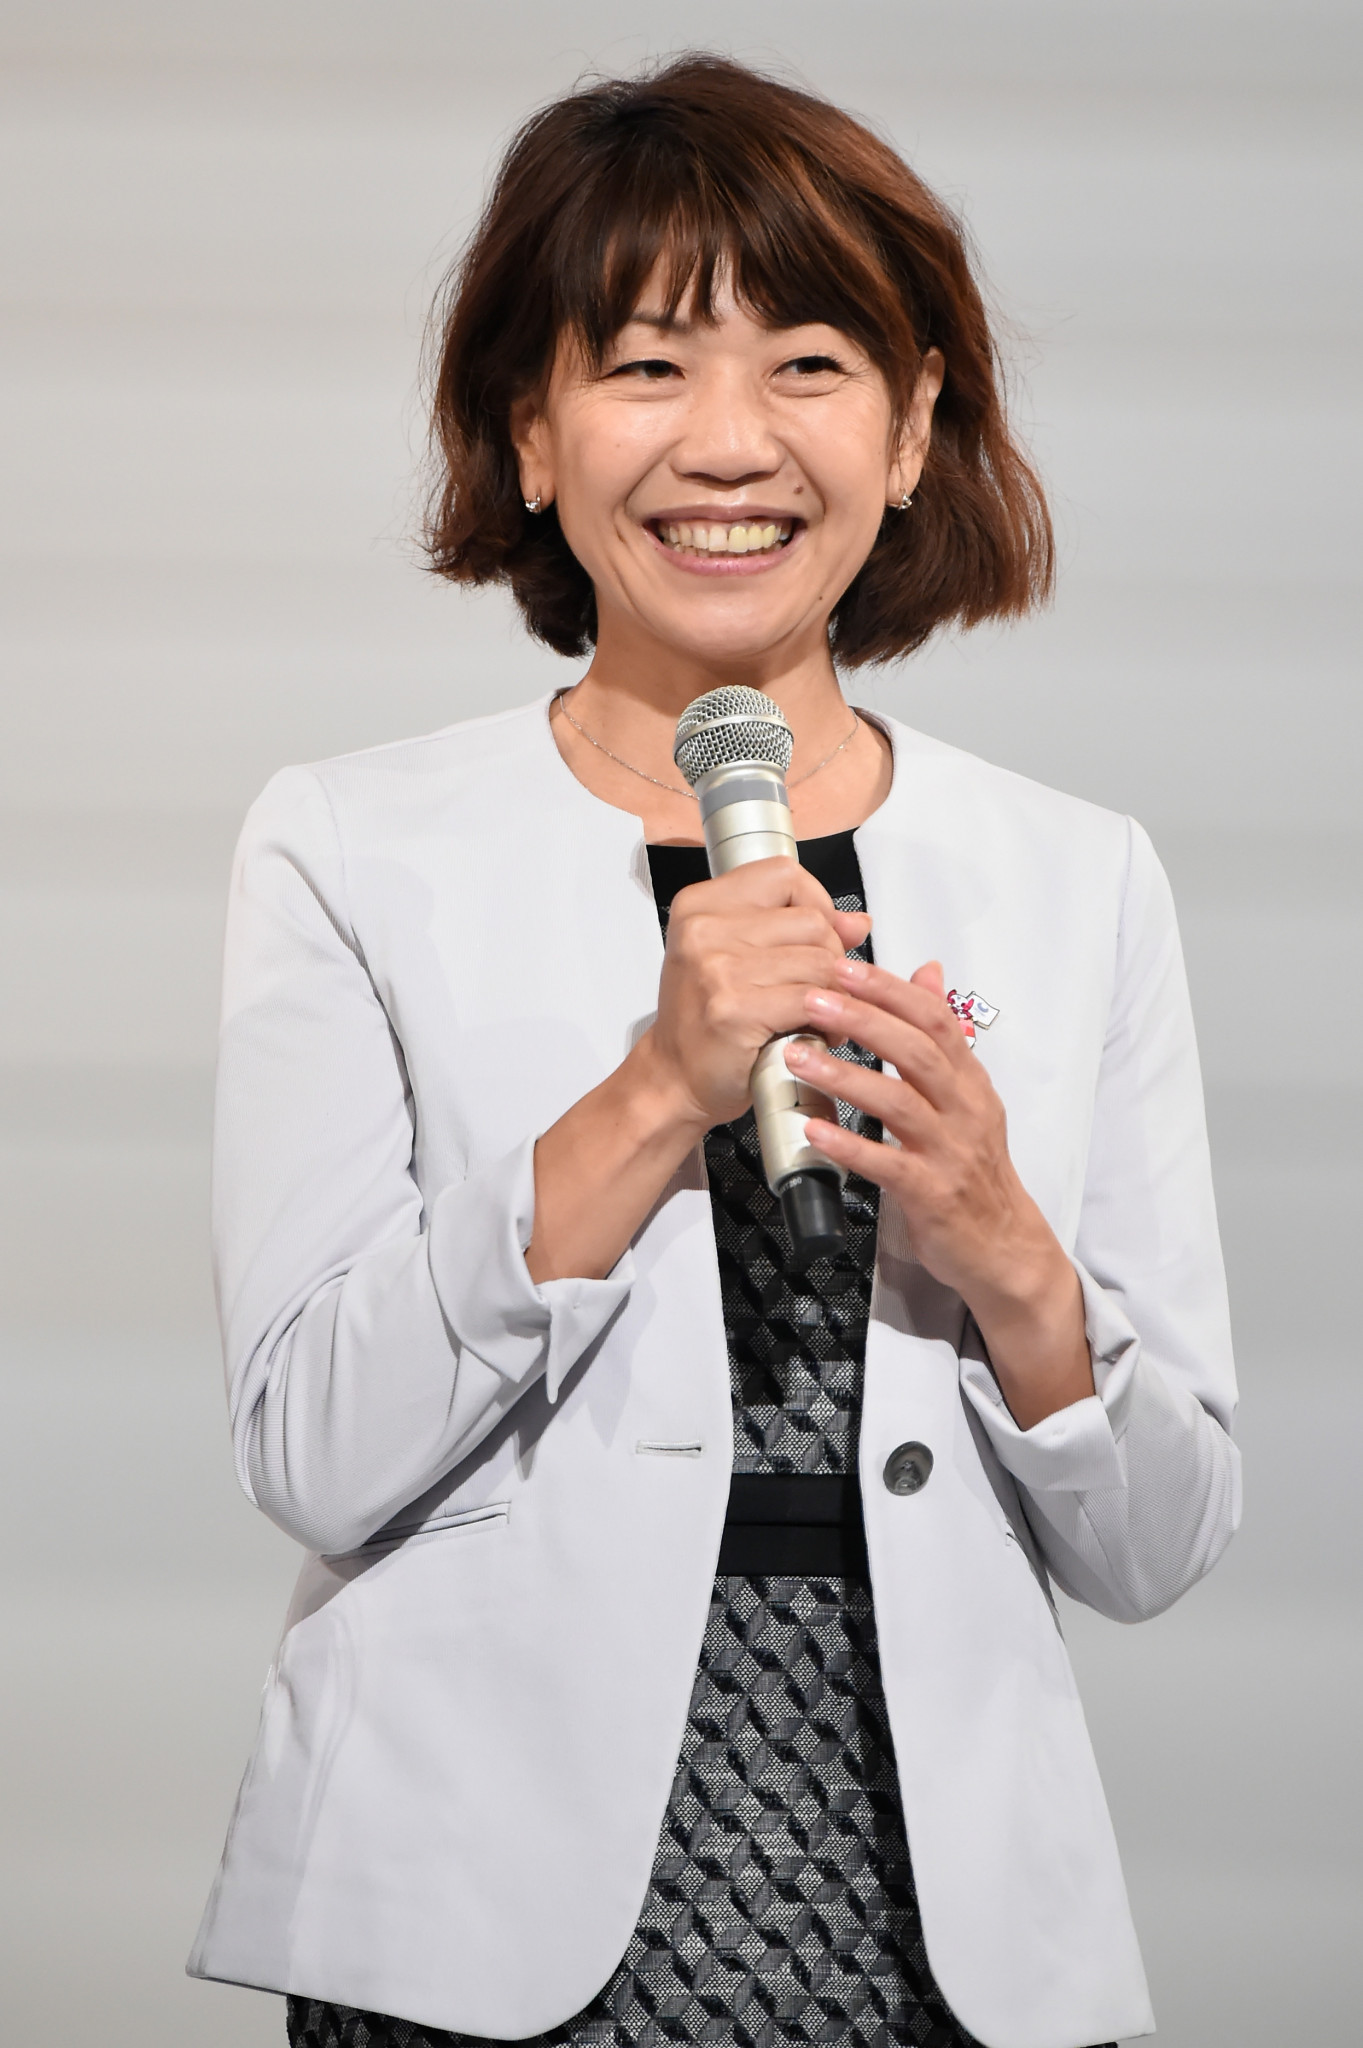 Sydney 2000 Olympic marathon winner Naoko Takahashi is among the 12 women to be added to the Tokyo 2020 Executive Board ©Getty Images